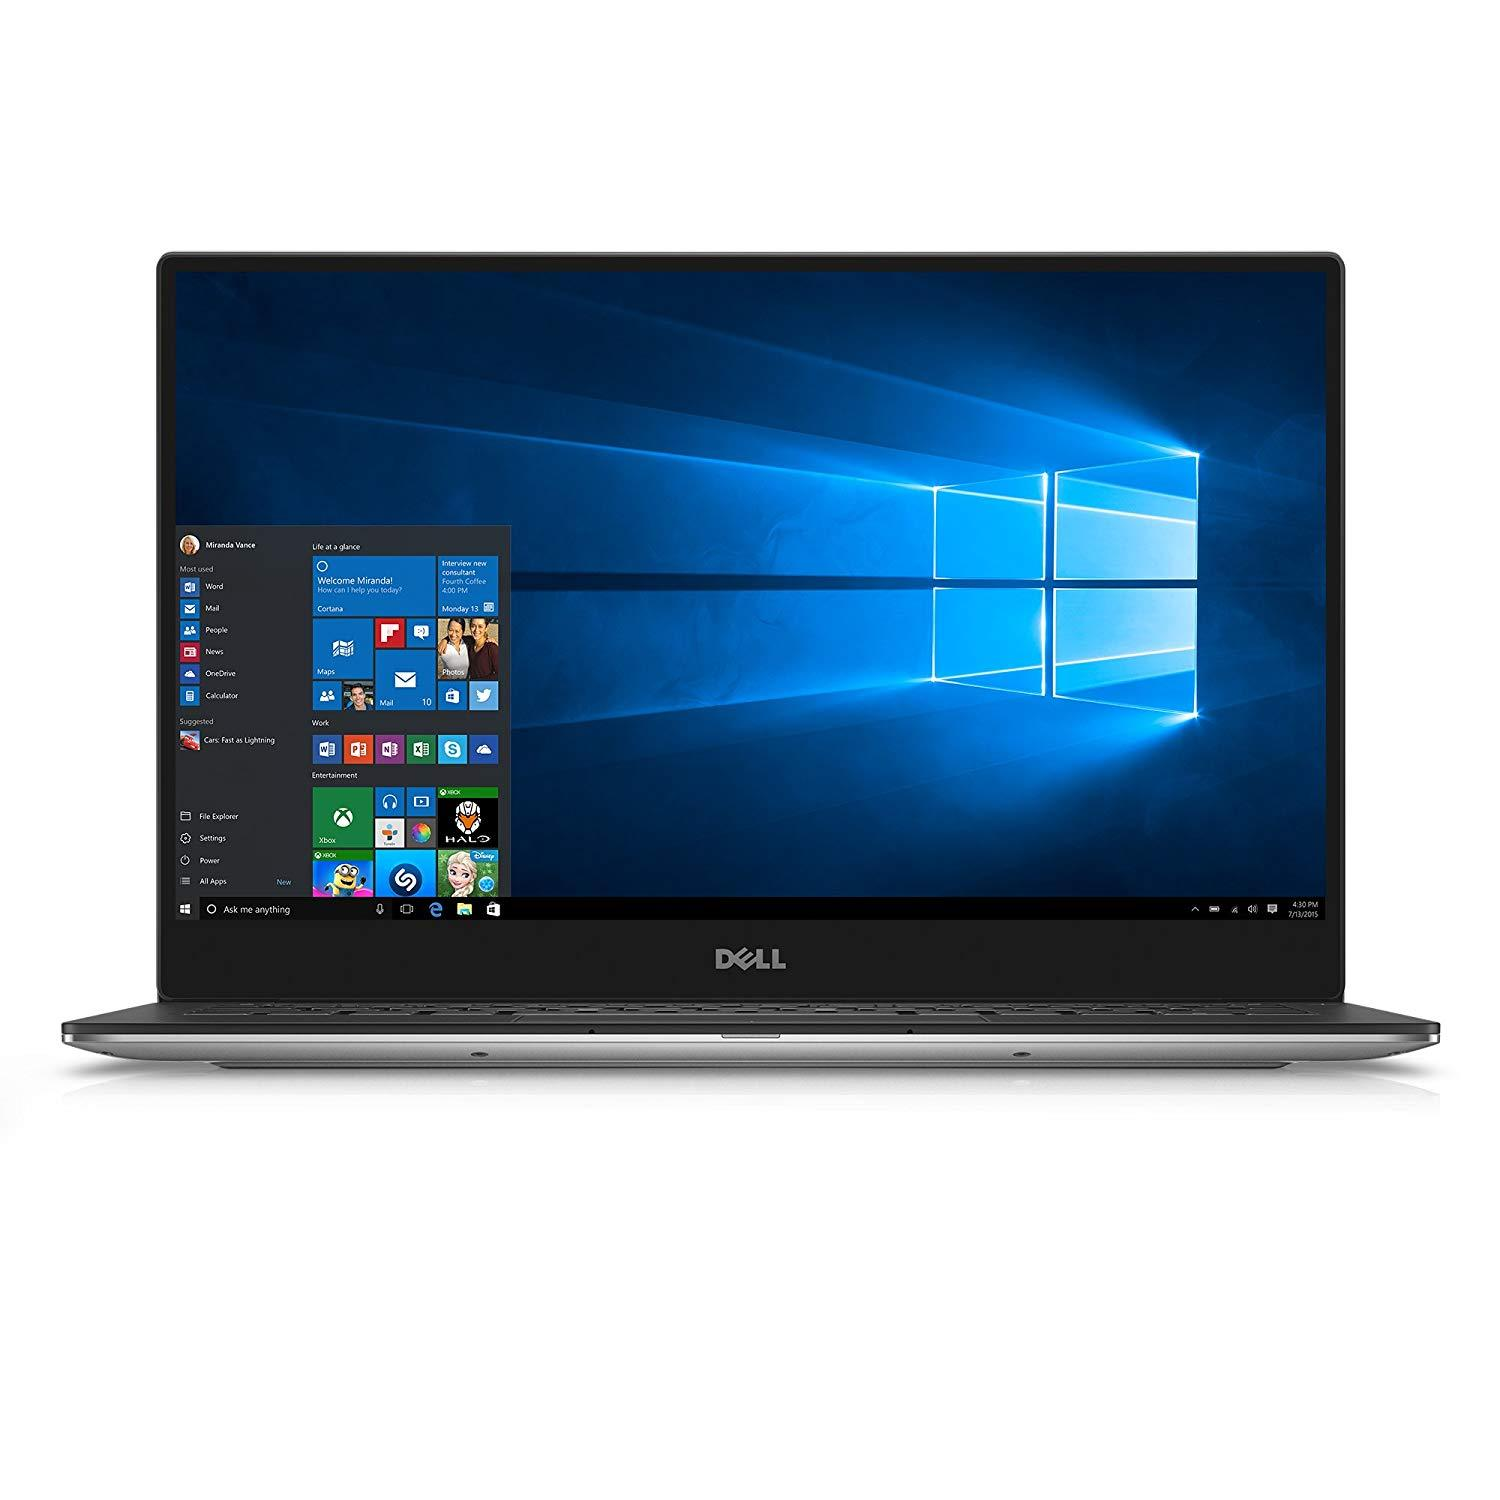 Dell XPS 13 9350 Ex-Lease Intel Core i5 6200U 2.3 GHz 8 GB RAM 256 GB SSD 13.4 Inch Wide Screen Webcam Win 10 Pro